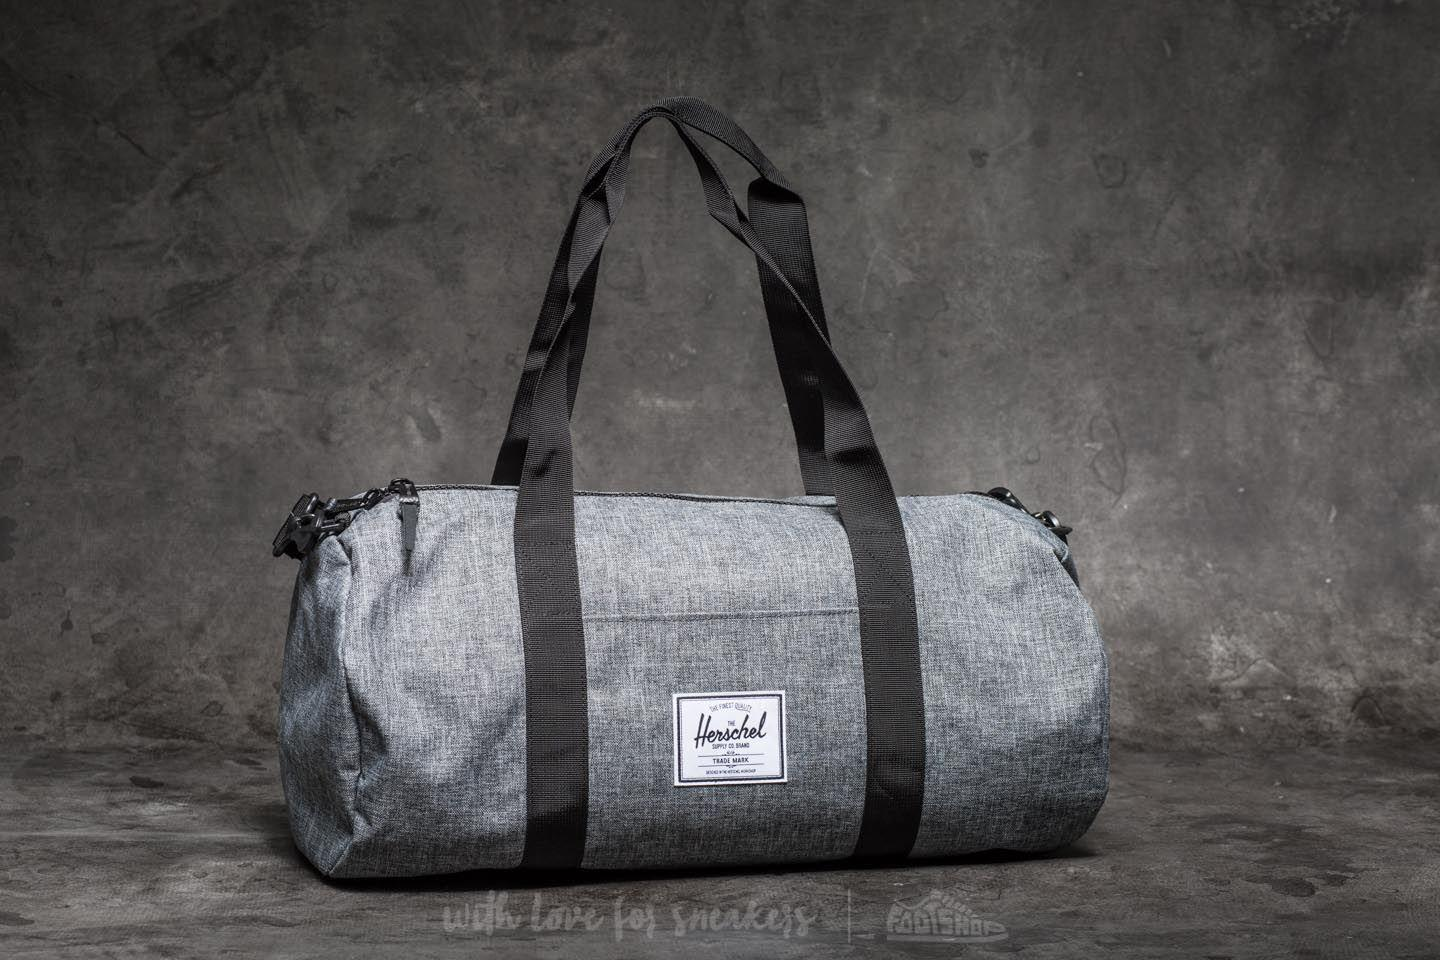 Lyst - Herschel Supply Co. Sutton Mid- Volume Duffle Bag Raven ... efc07442aecad